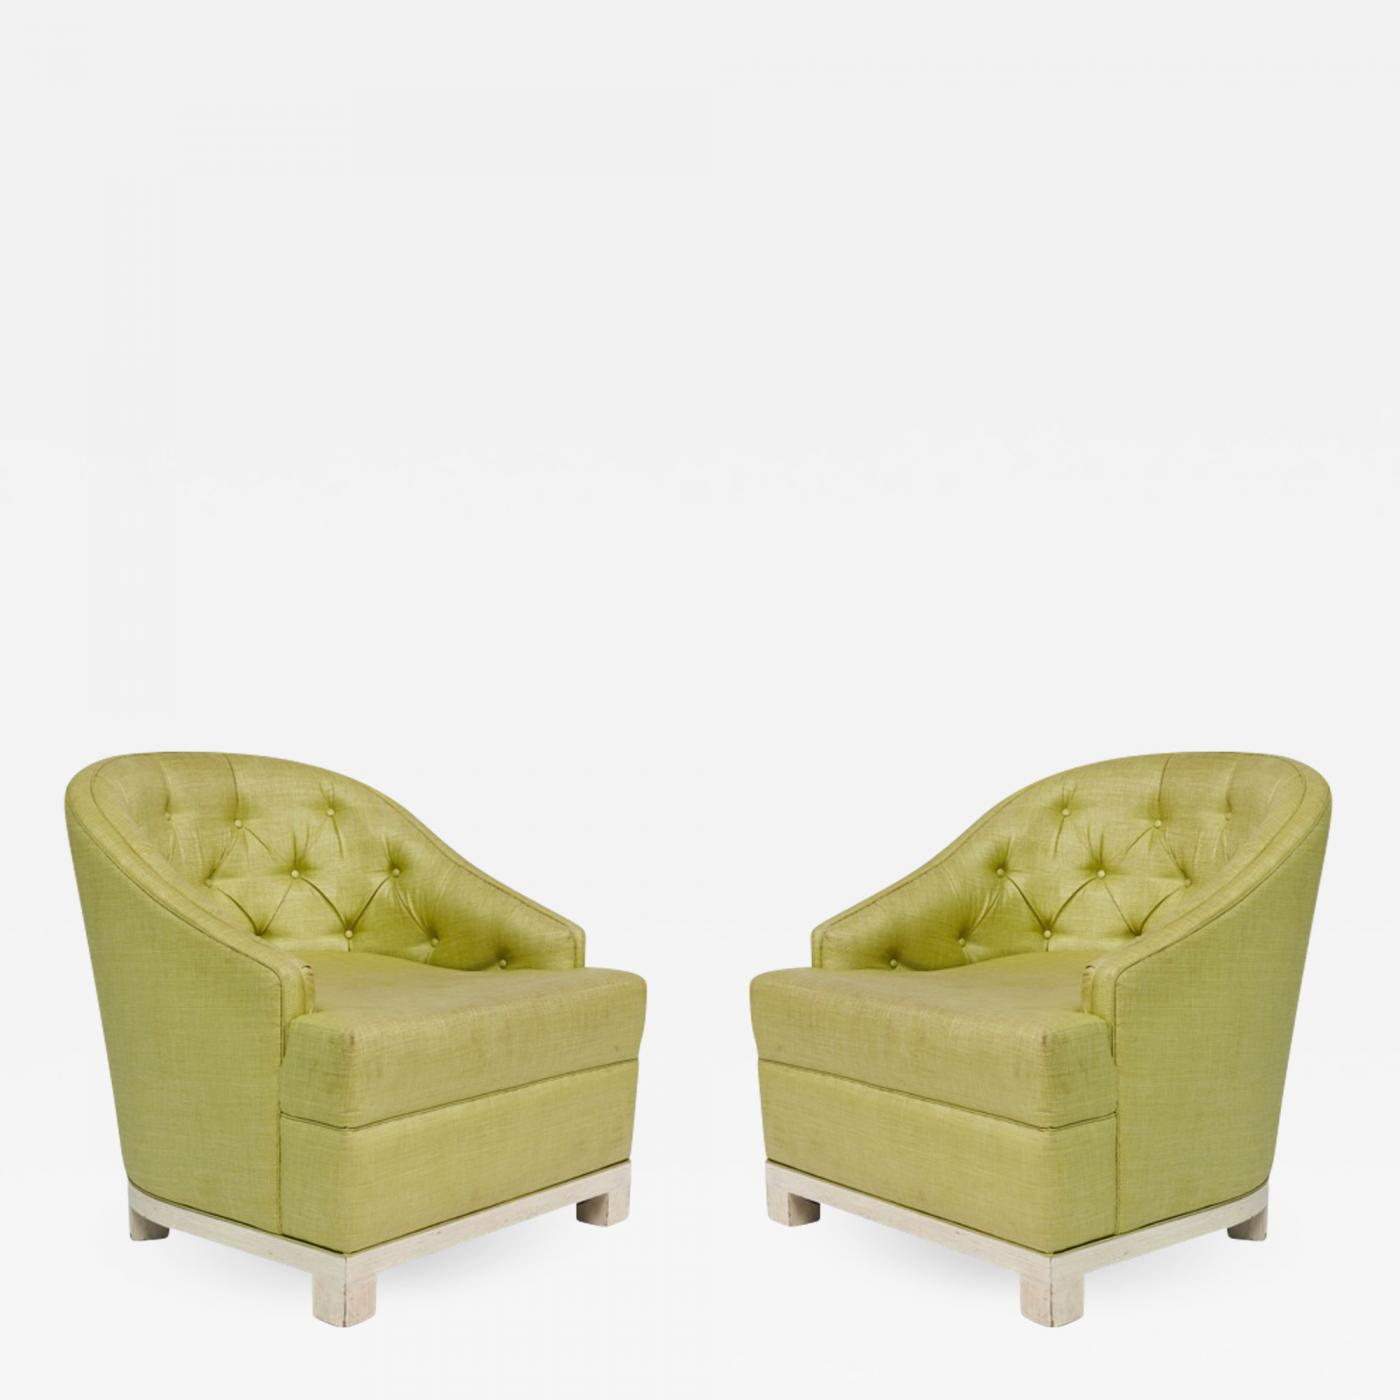 Kelly Wearstler Furniture: Pair Of Kelly Wearstler Chairs From The